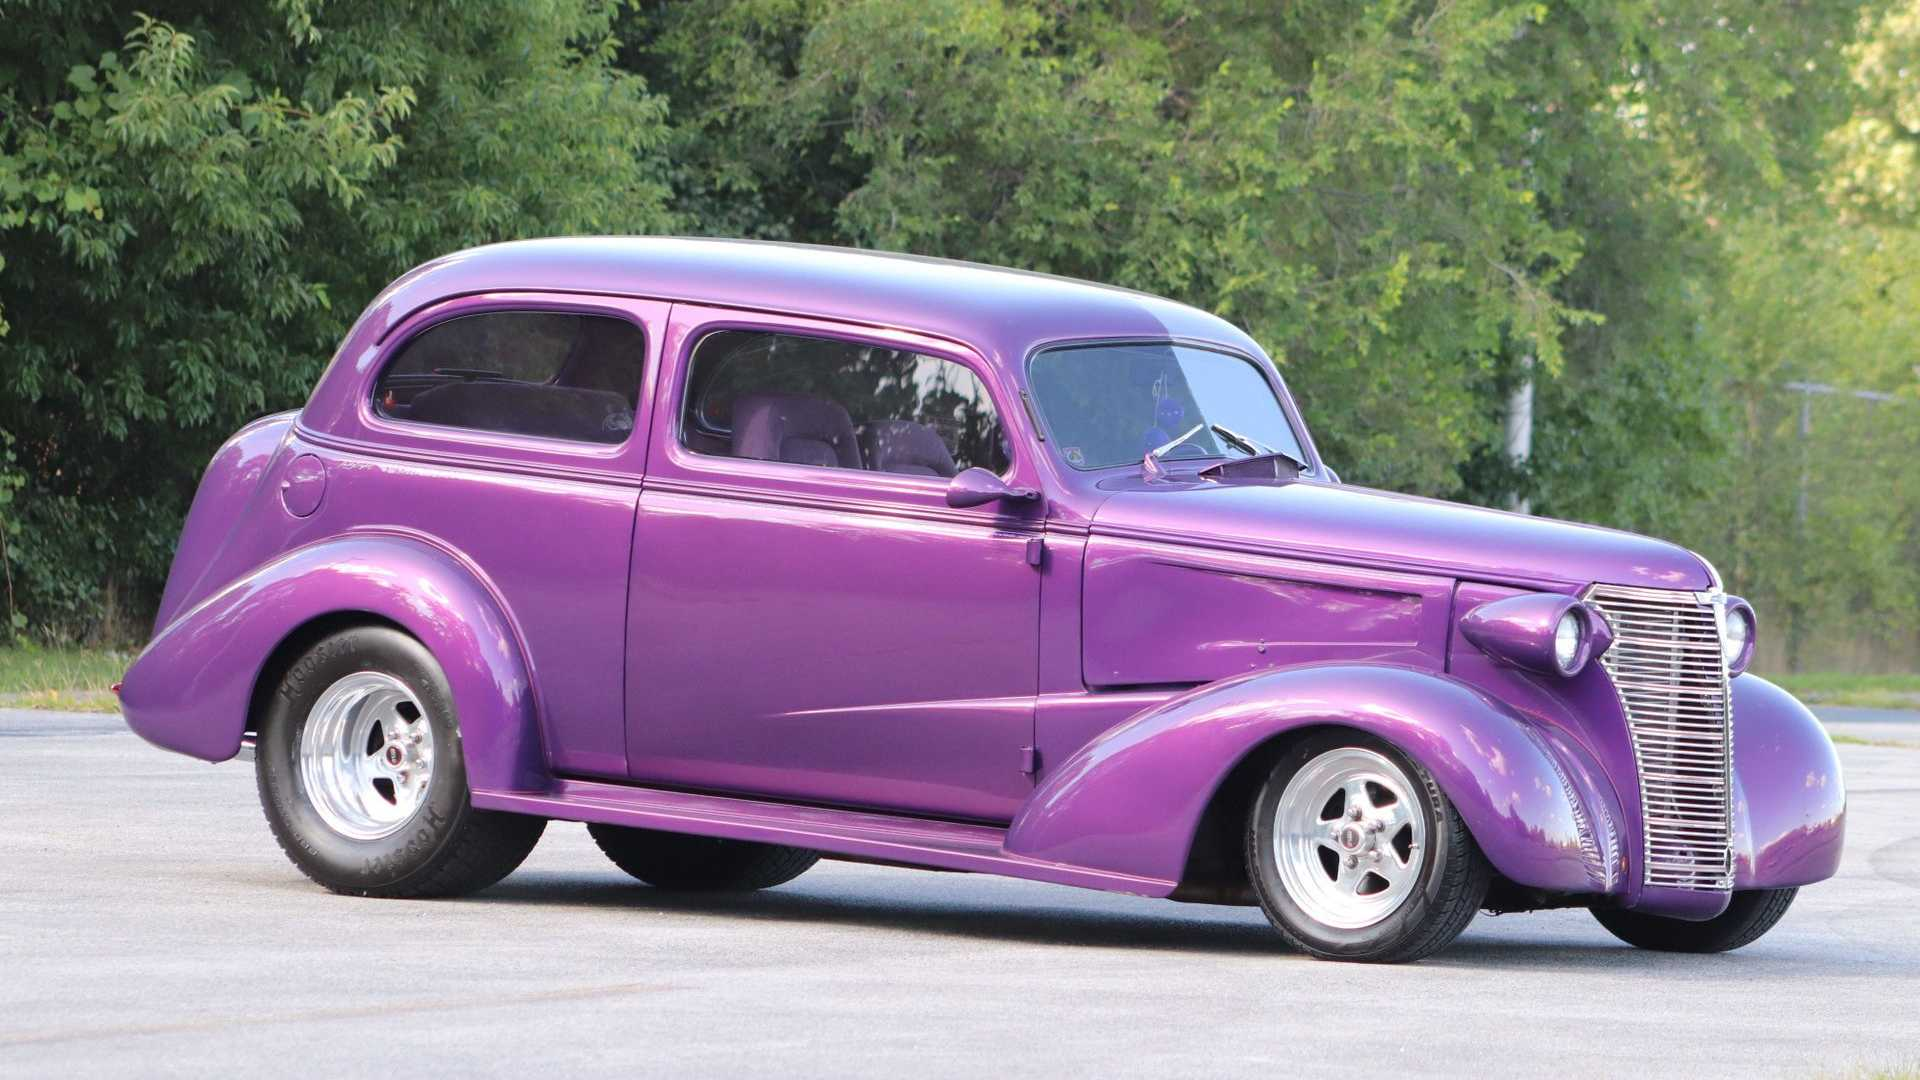 38 Chevy Street Rod Is A Tubbed Purple Three-Seater | Motorious